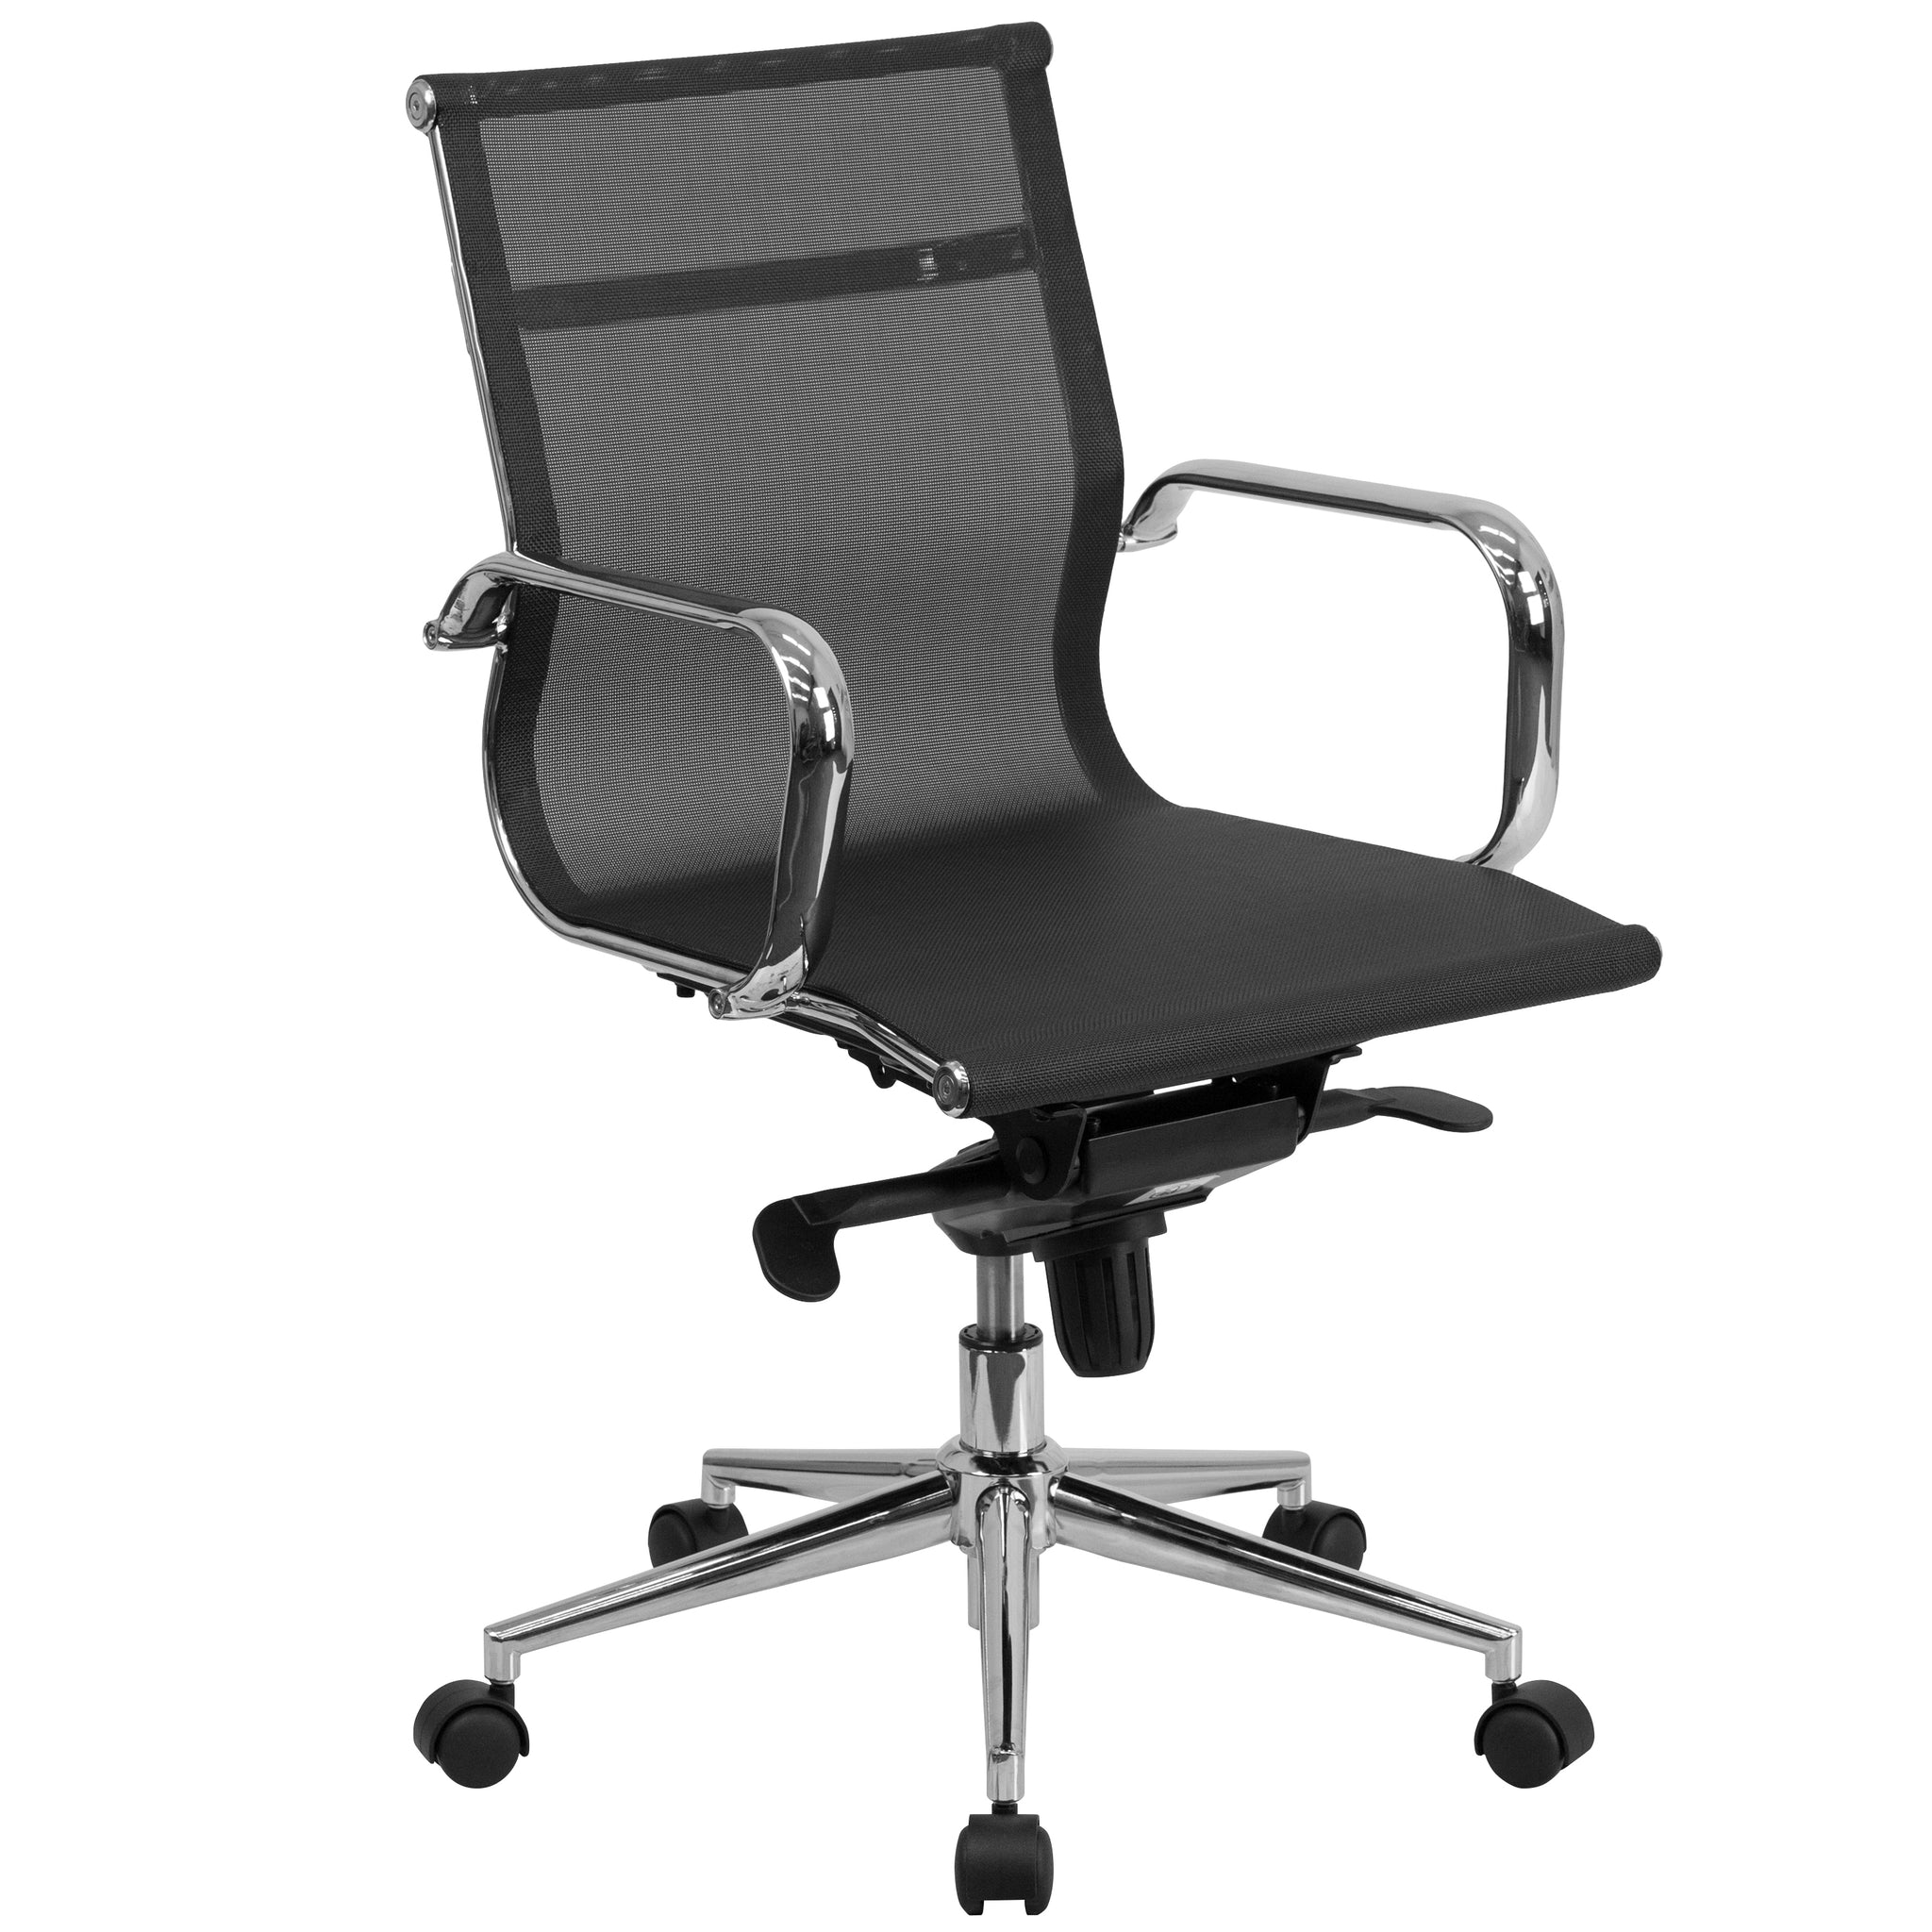 Mid-Back Mesh Executive Swivel Office Chair with Synchro-Tilt Mechanism: Black